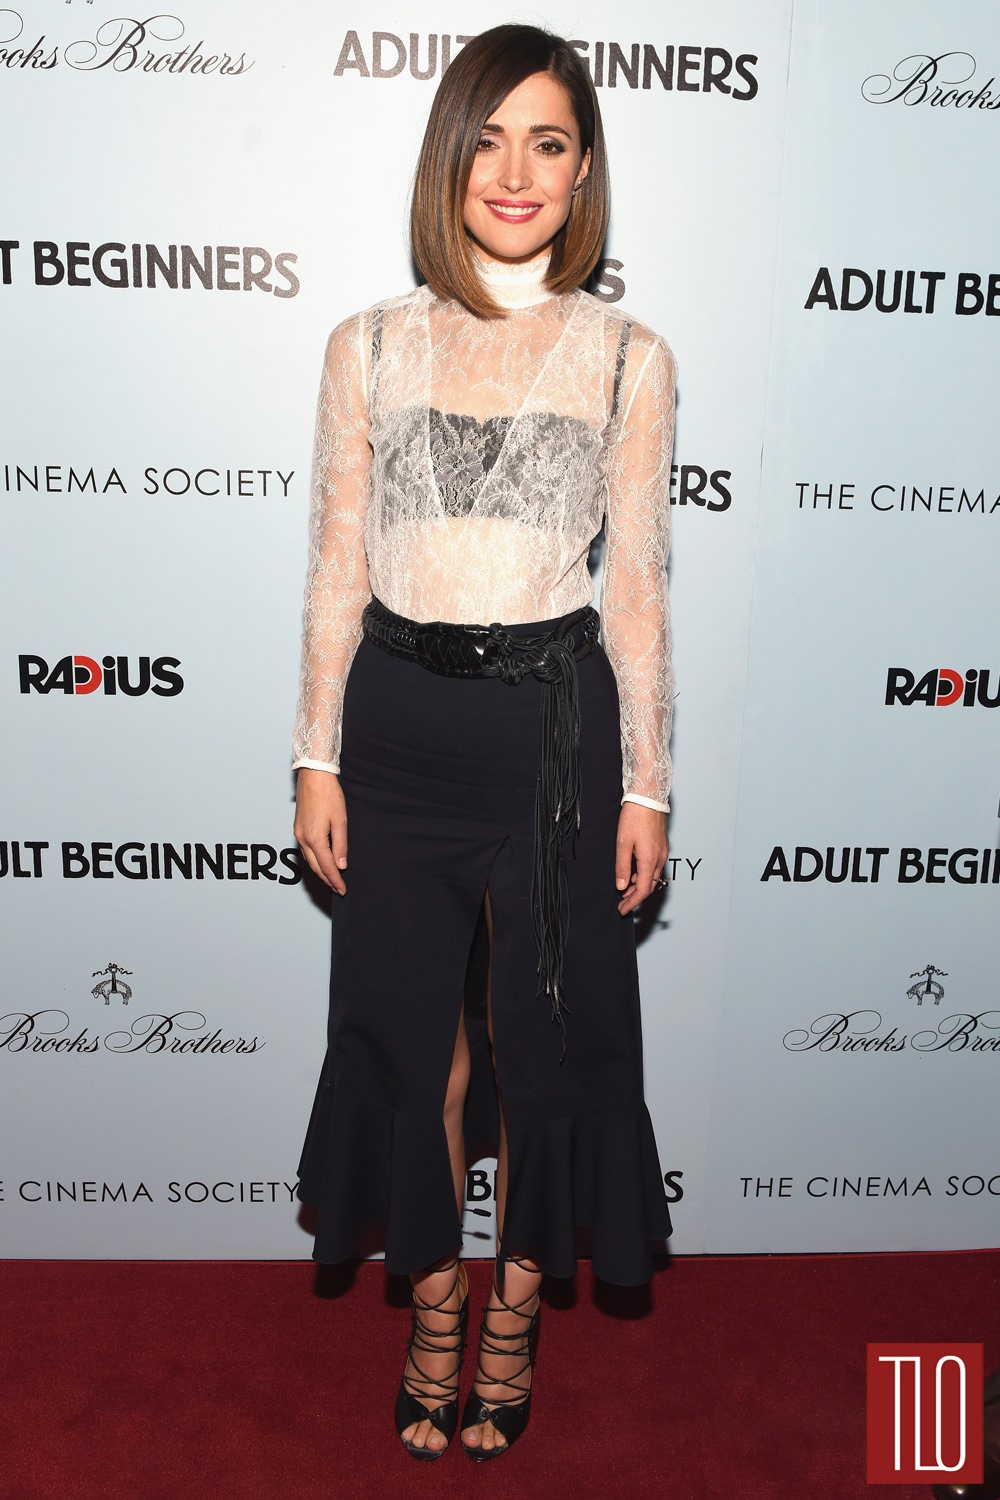 Rose-Byrne-Adult-Beginners-Red-Carpet-Movie-New-York-Premiere-Red-Carpet-Fashion-Altuzarra-Tom-Lorenzo-Site-TLO (1)